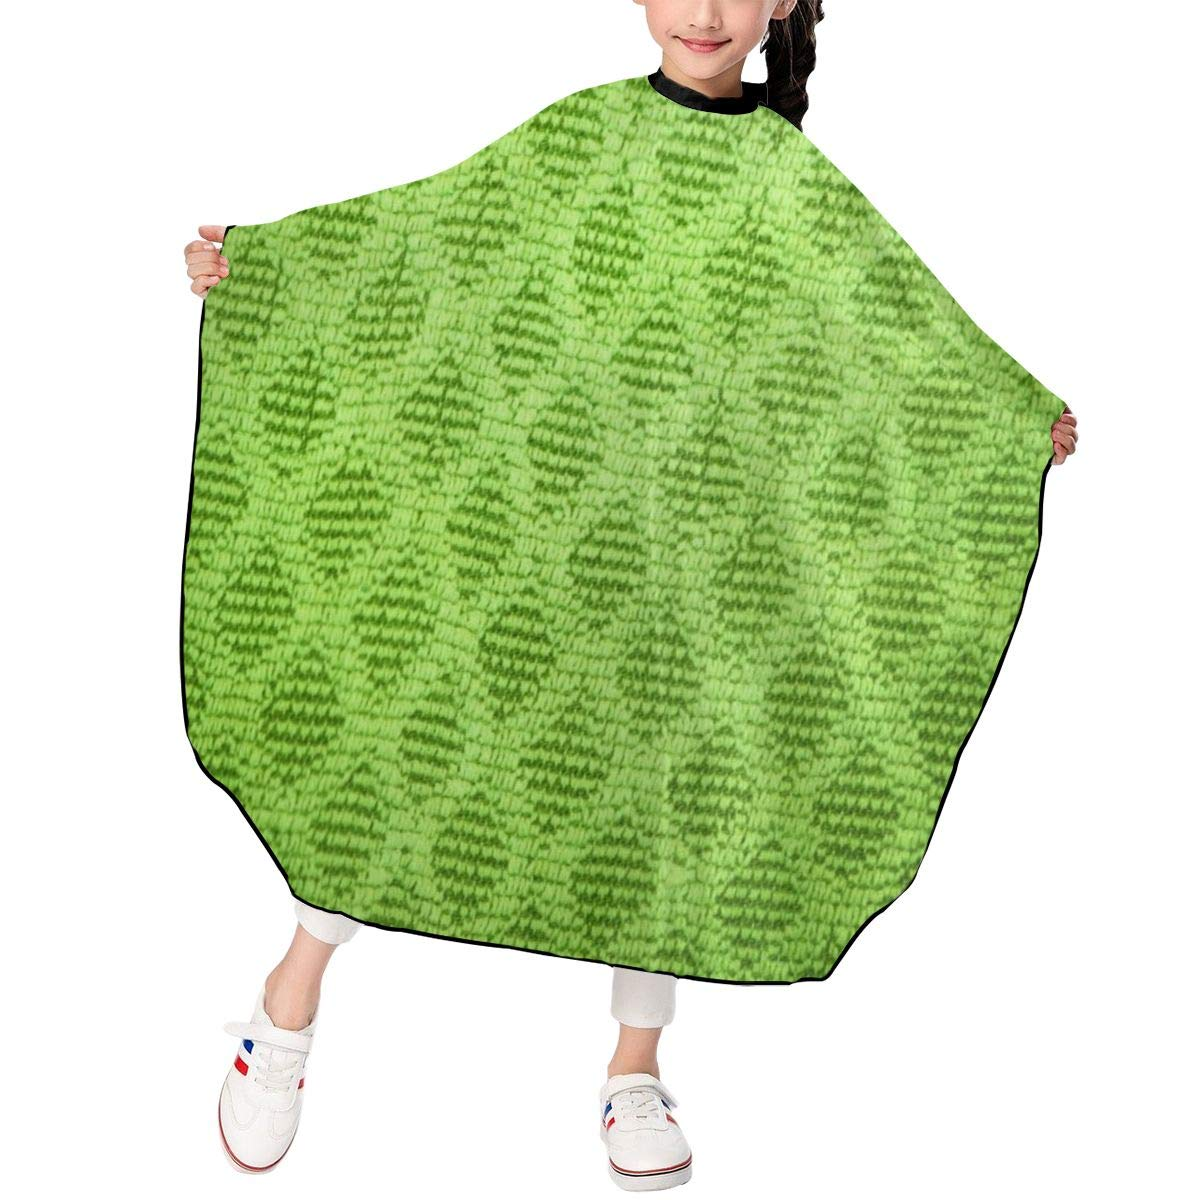 Barber Cape, Lime Green Diamond Professional Haircut Cape, Hairdressing Apron, Hair Cutting Cape for Kids